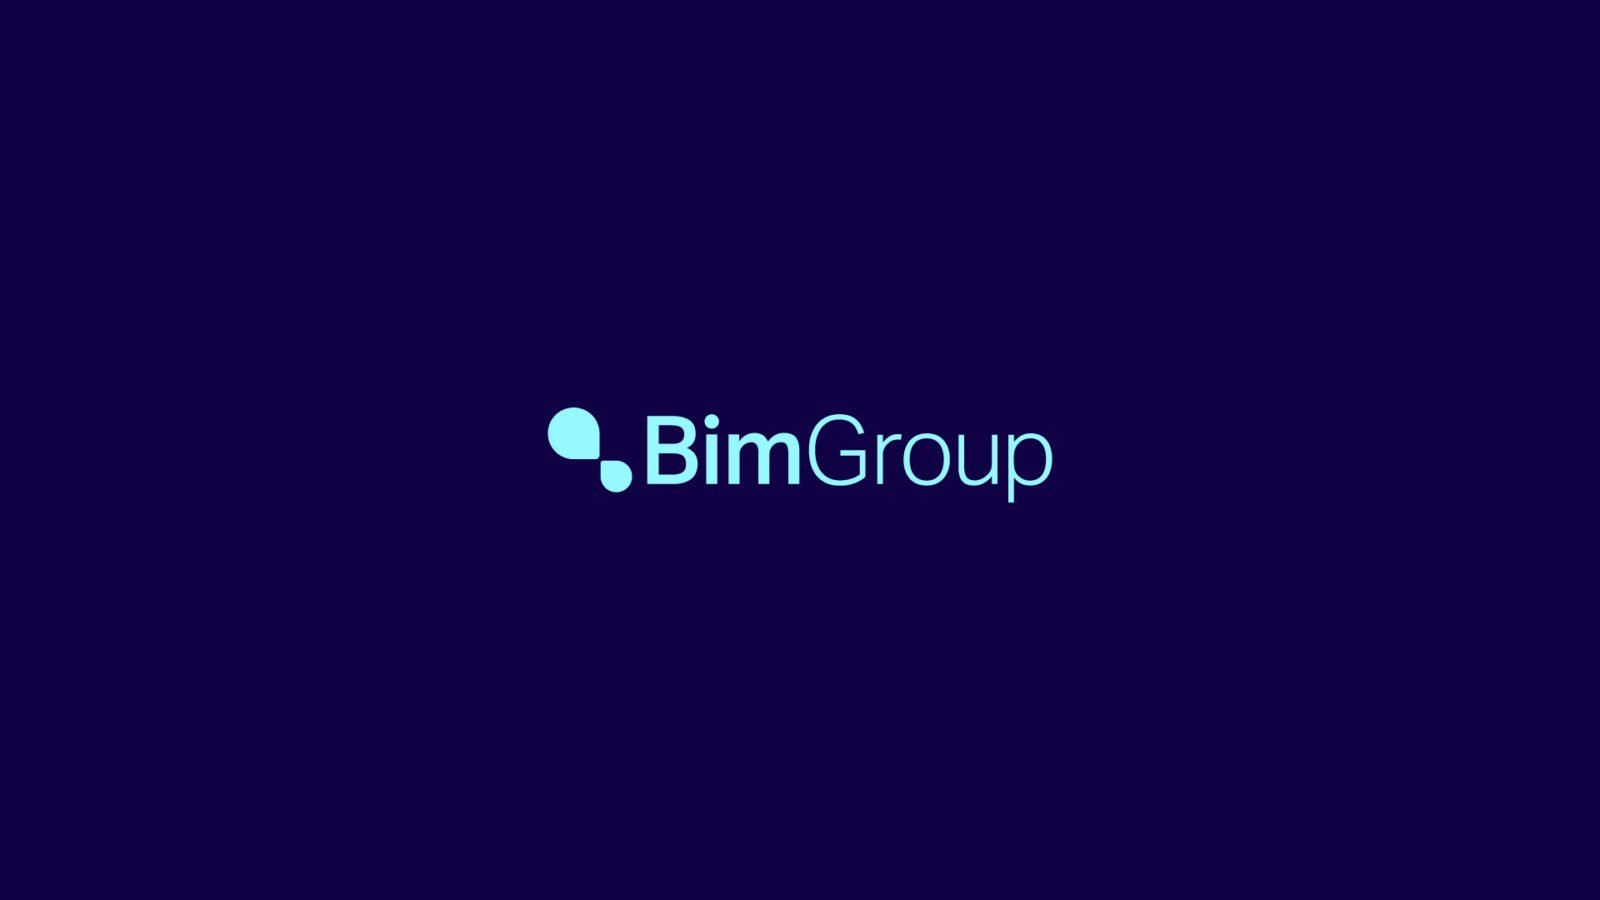 Bim Group Professional Services Brand Identity Wordmark by Bullhorn Creative